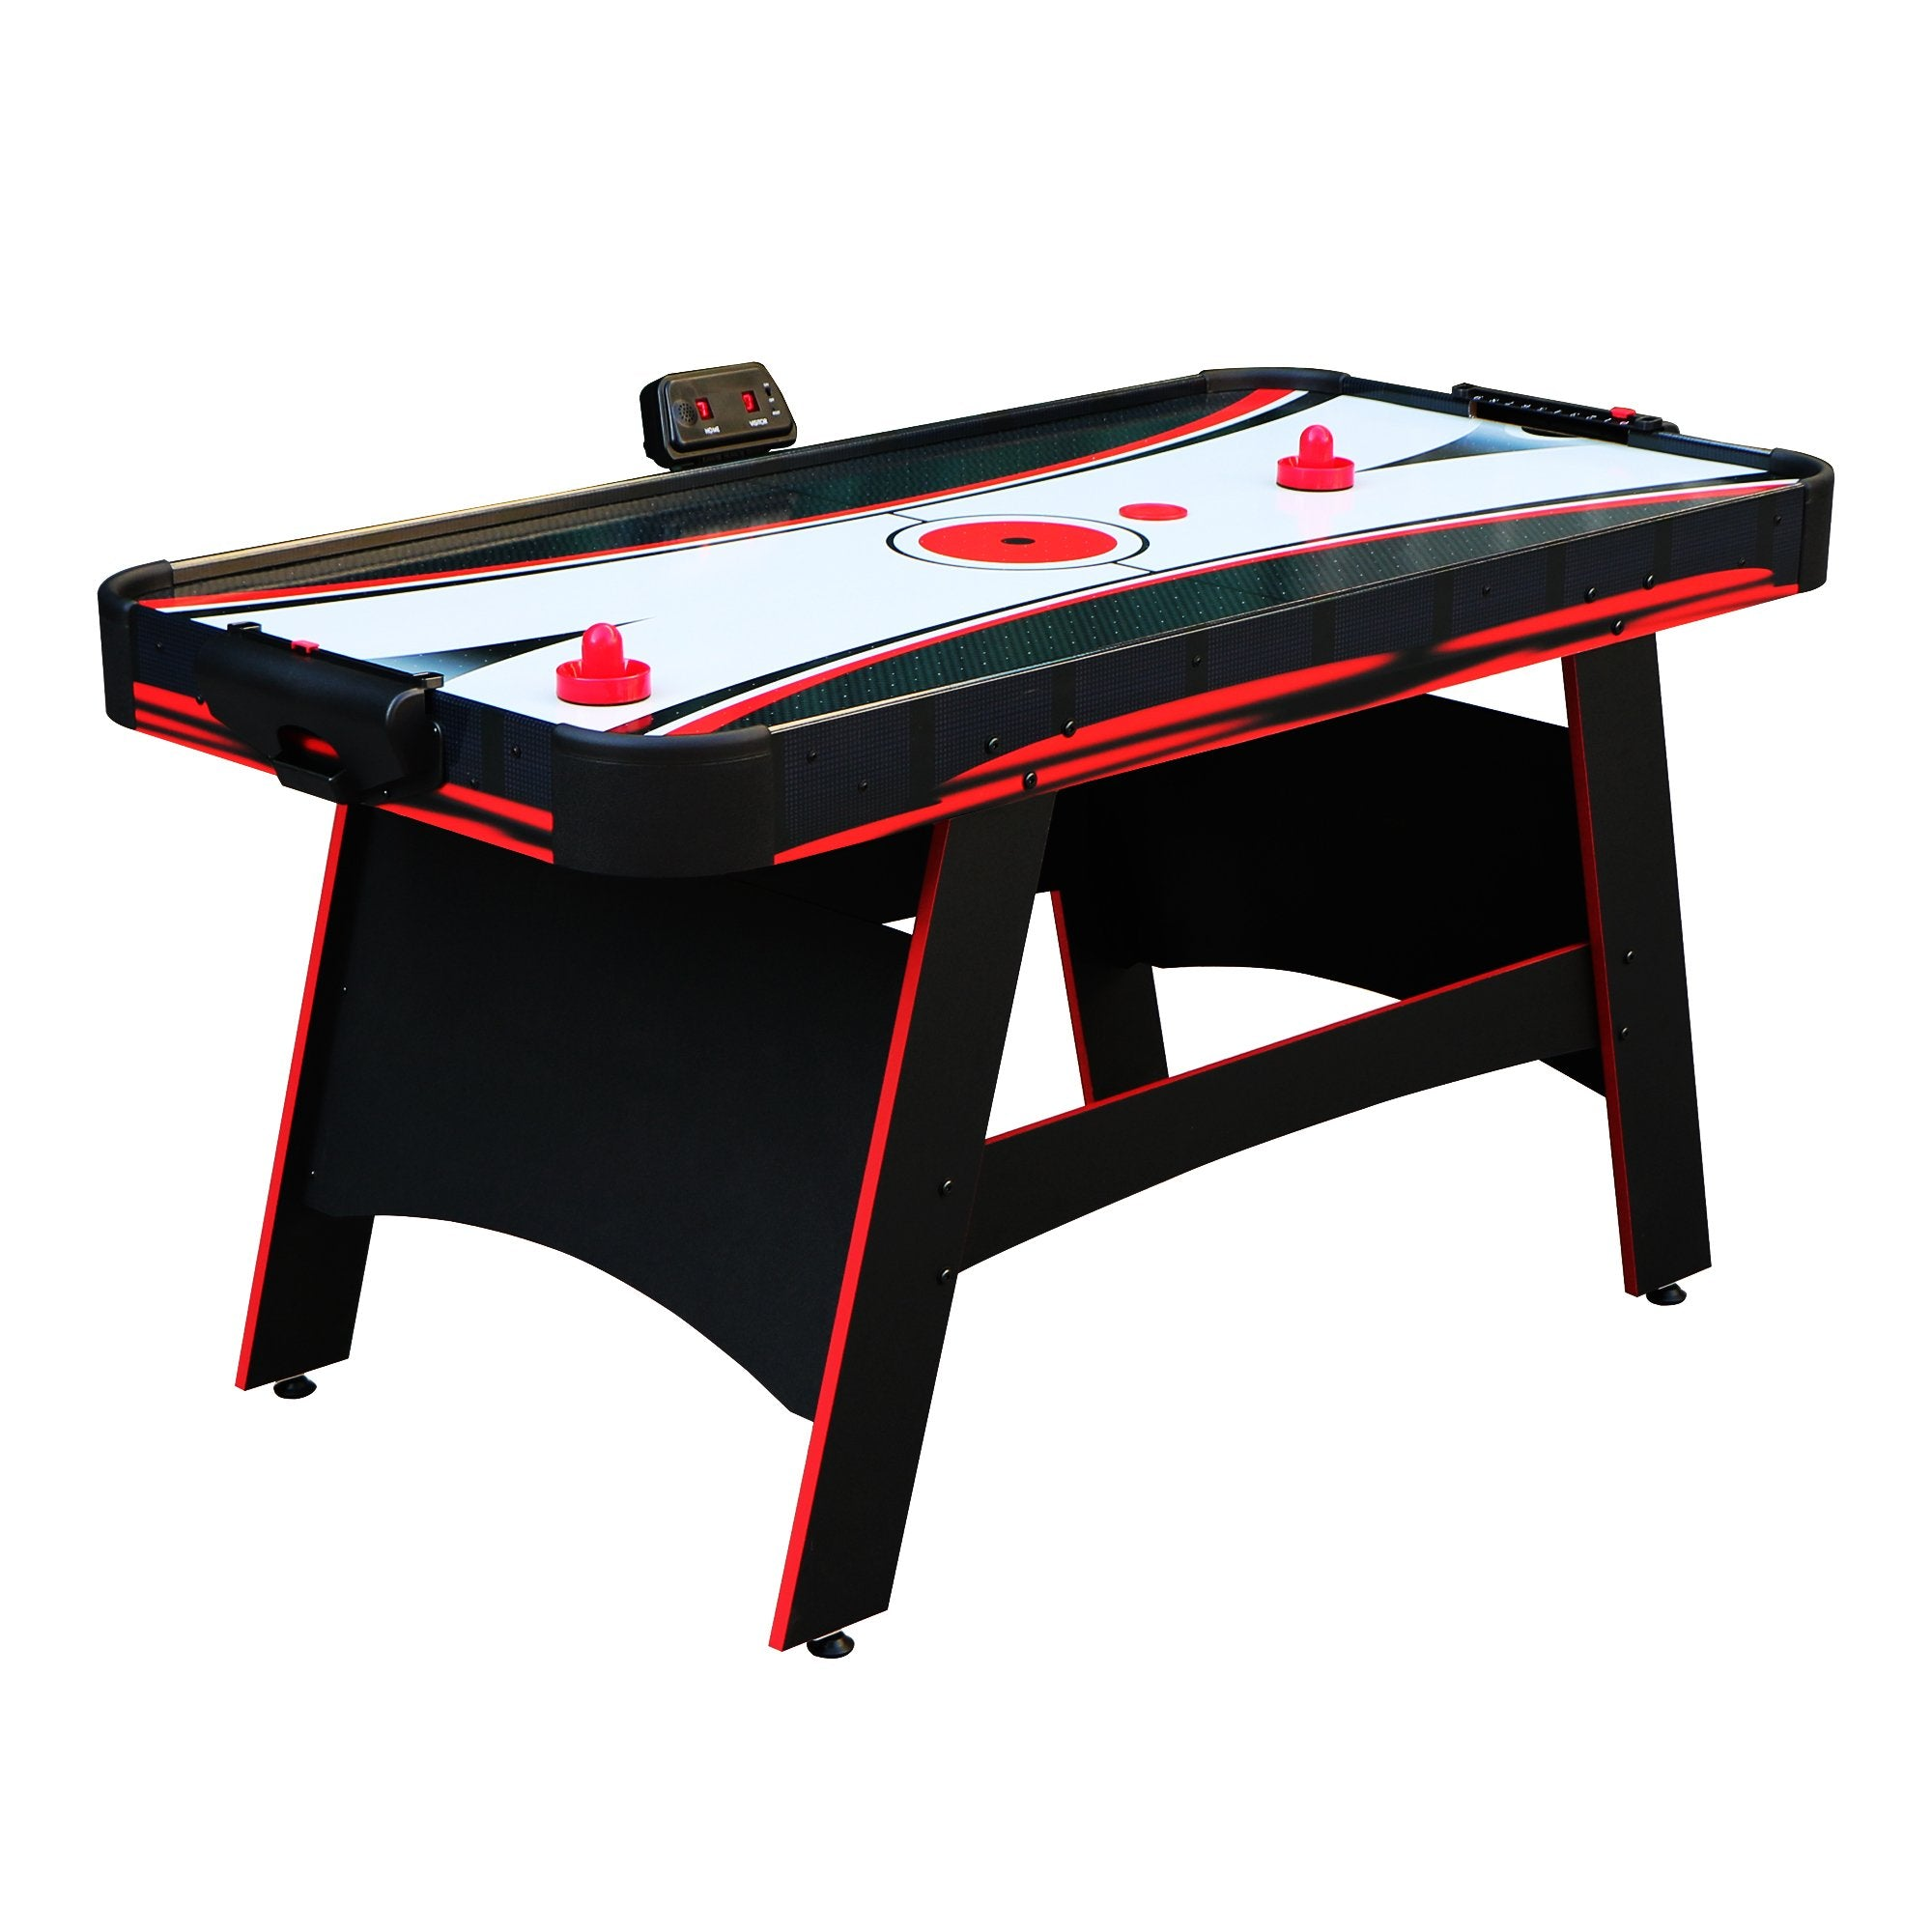 Hathaway Ranger 5ft Air Hockey Table - Gaming Blaze